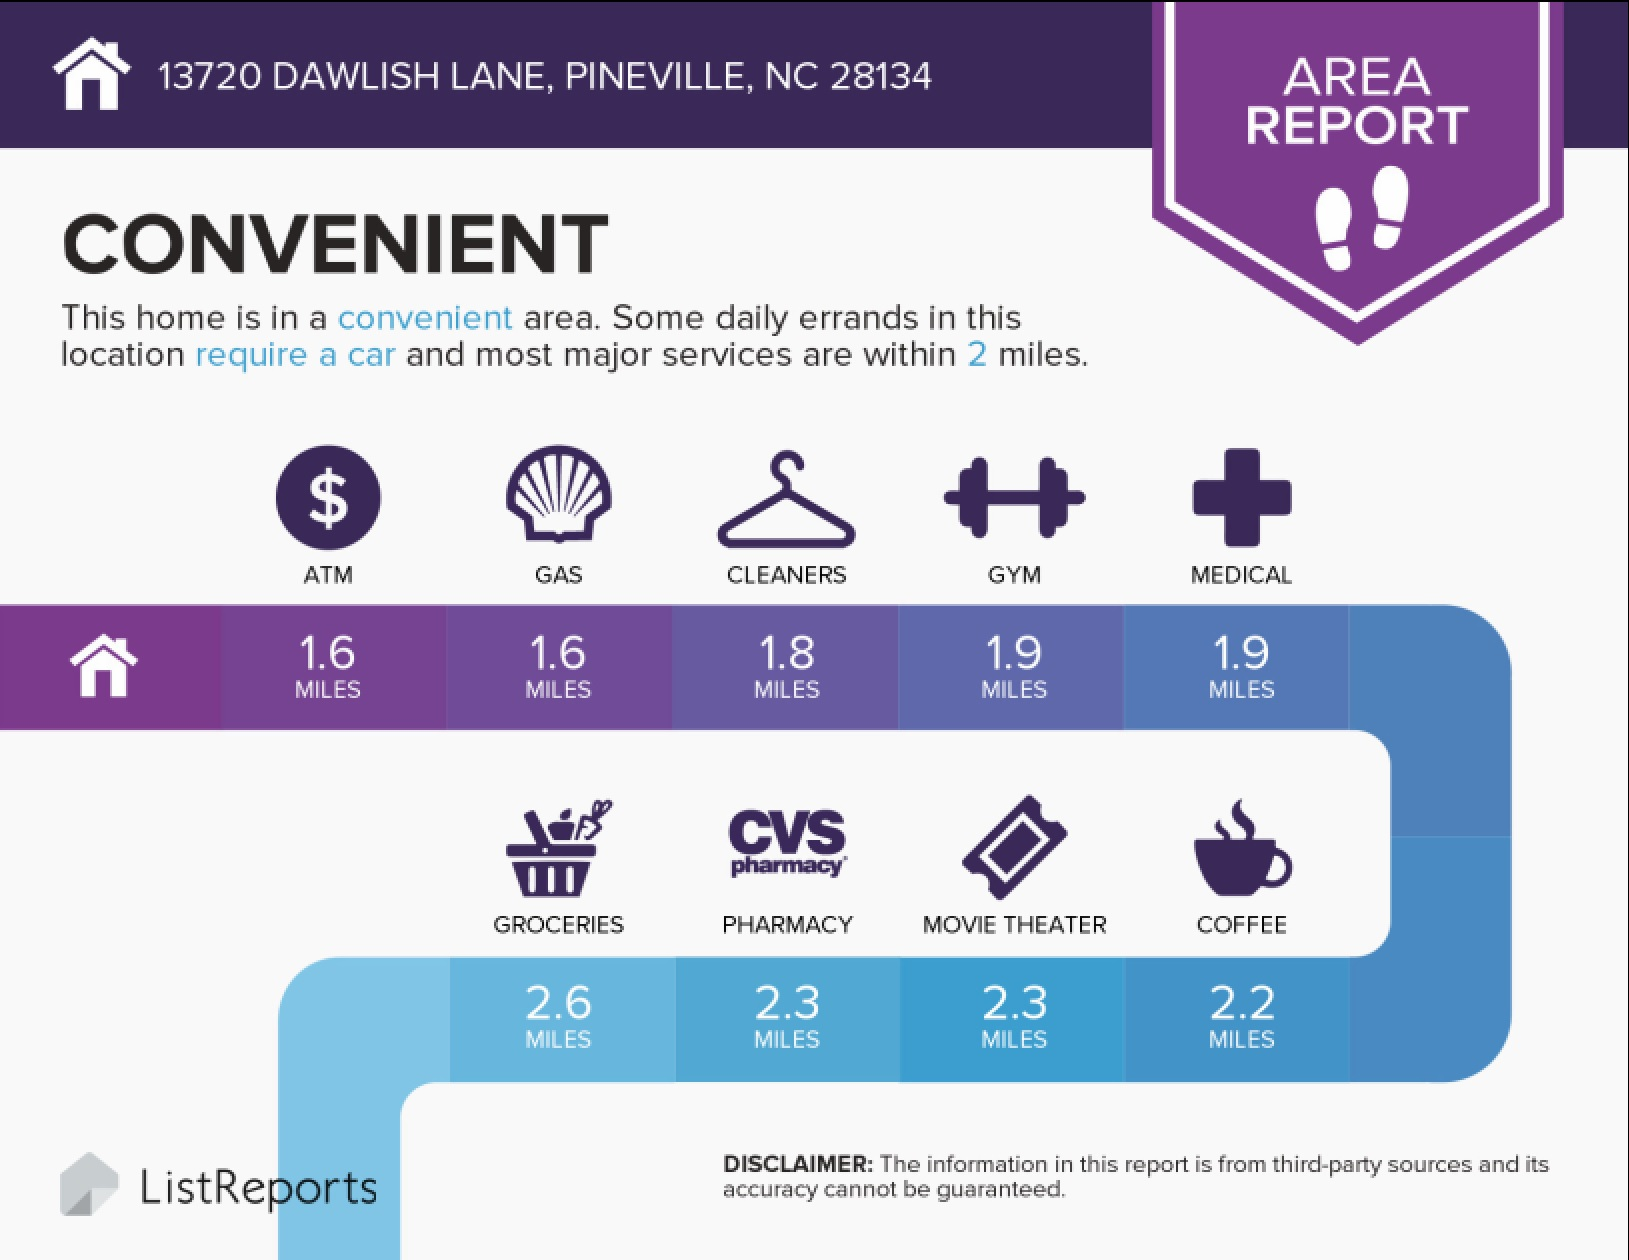 Danby neighborhood in Pineville, NC convenient to everything